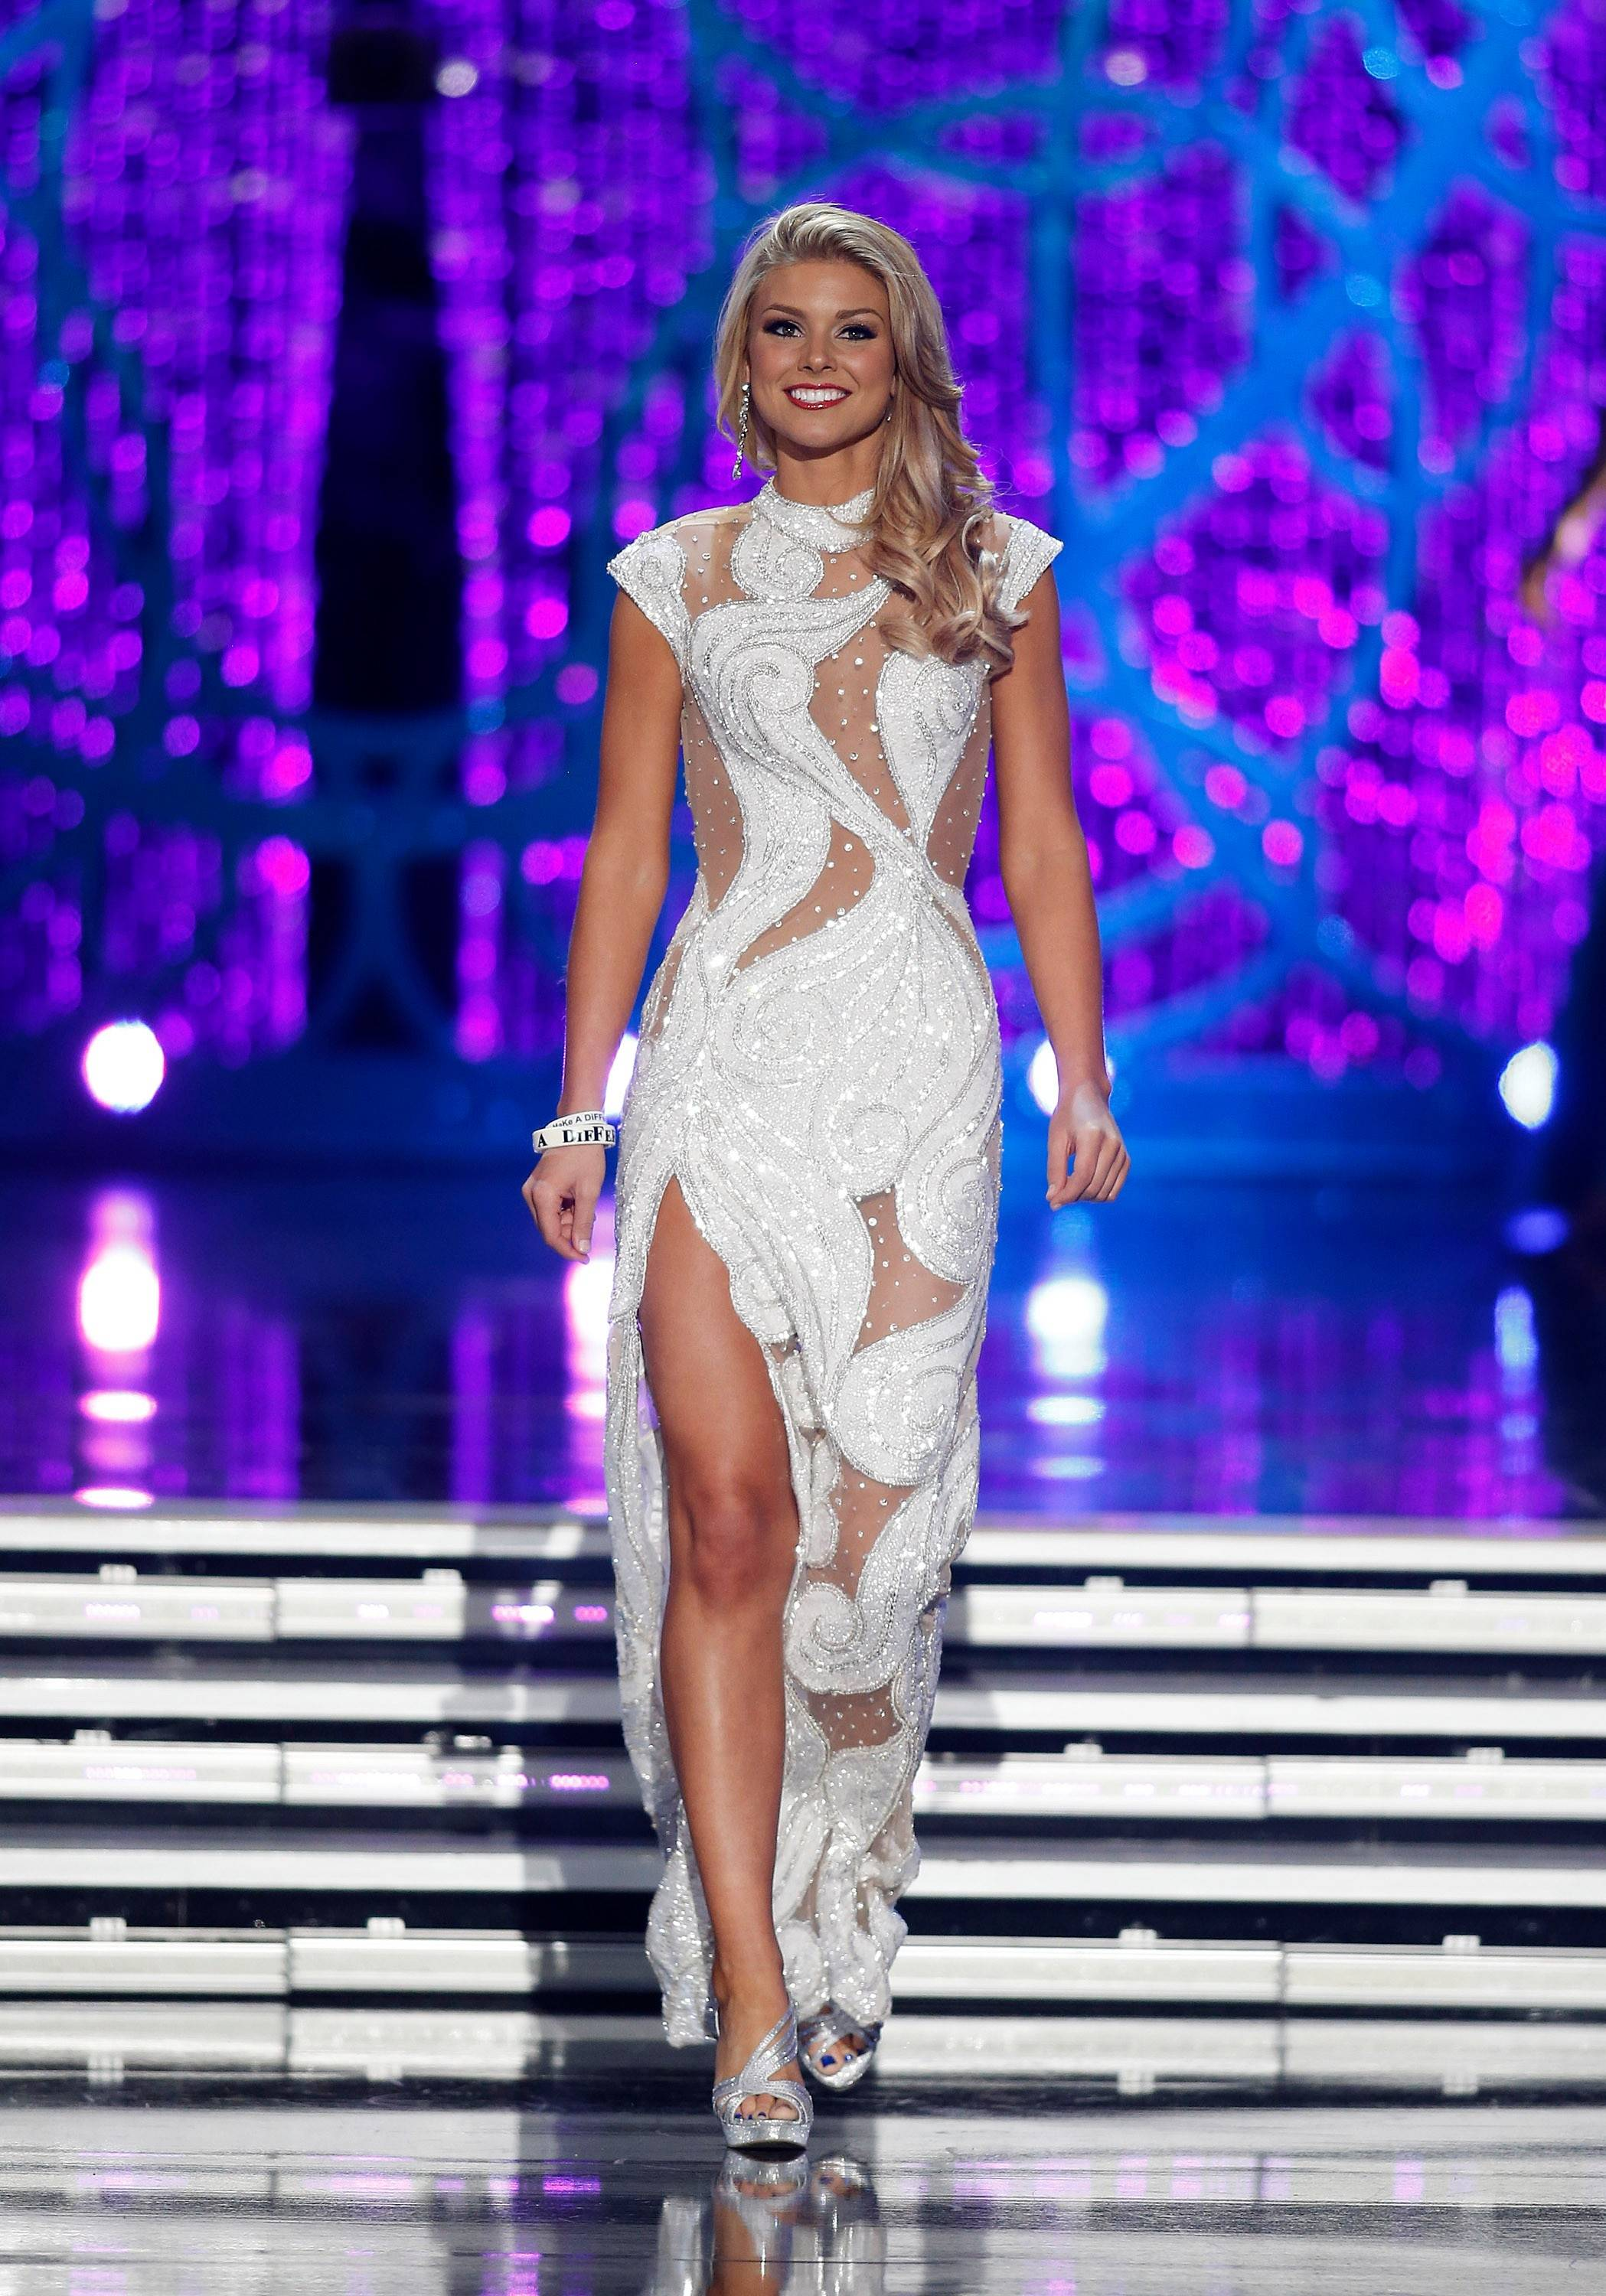 Miss South Carolina Ali Rogers competes in the evening gown portion of the Miss America 2013 pageant on Saturday, Jan. 12, 2013, in Las Vegas. Rogers was named first runner-up.